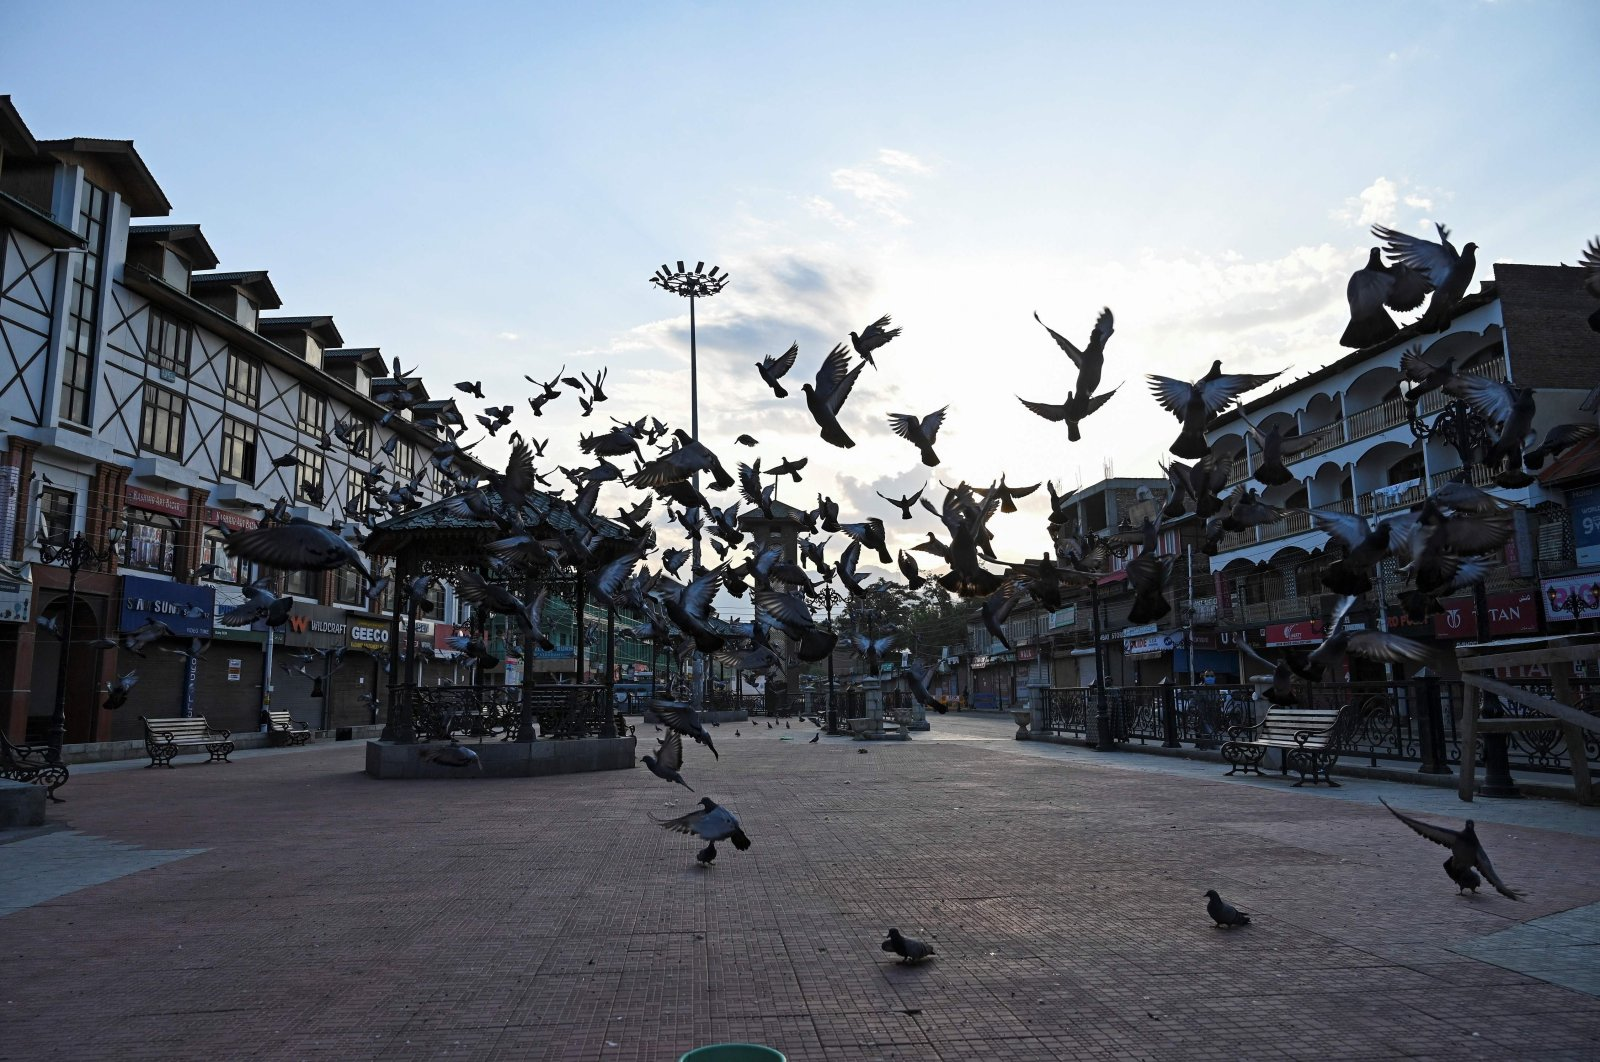 A flock of pigeons fly at a square during a lockdown in Srinagar, Indian-occupied Jammu and Kashmir, Aug. 4, 2020. (AFP Photo)